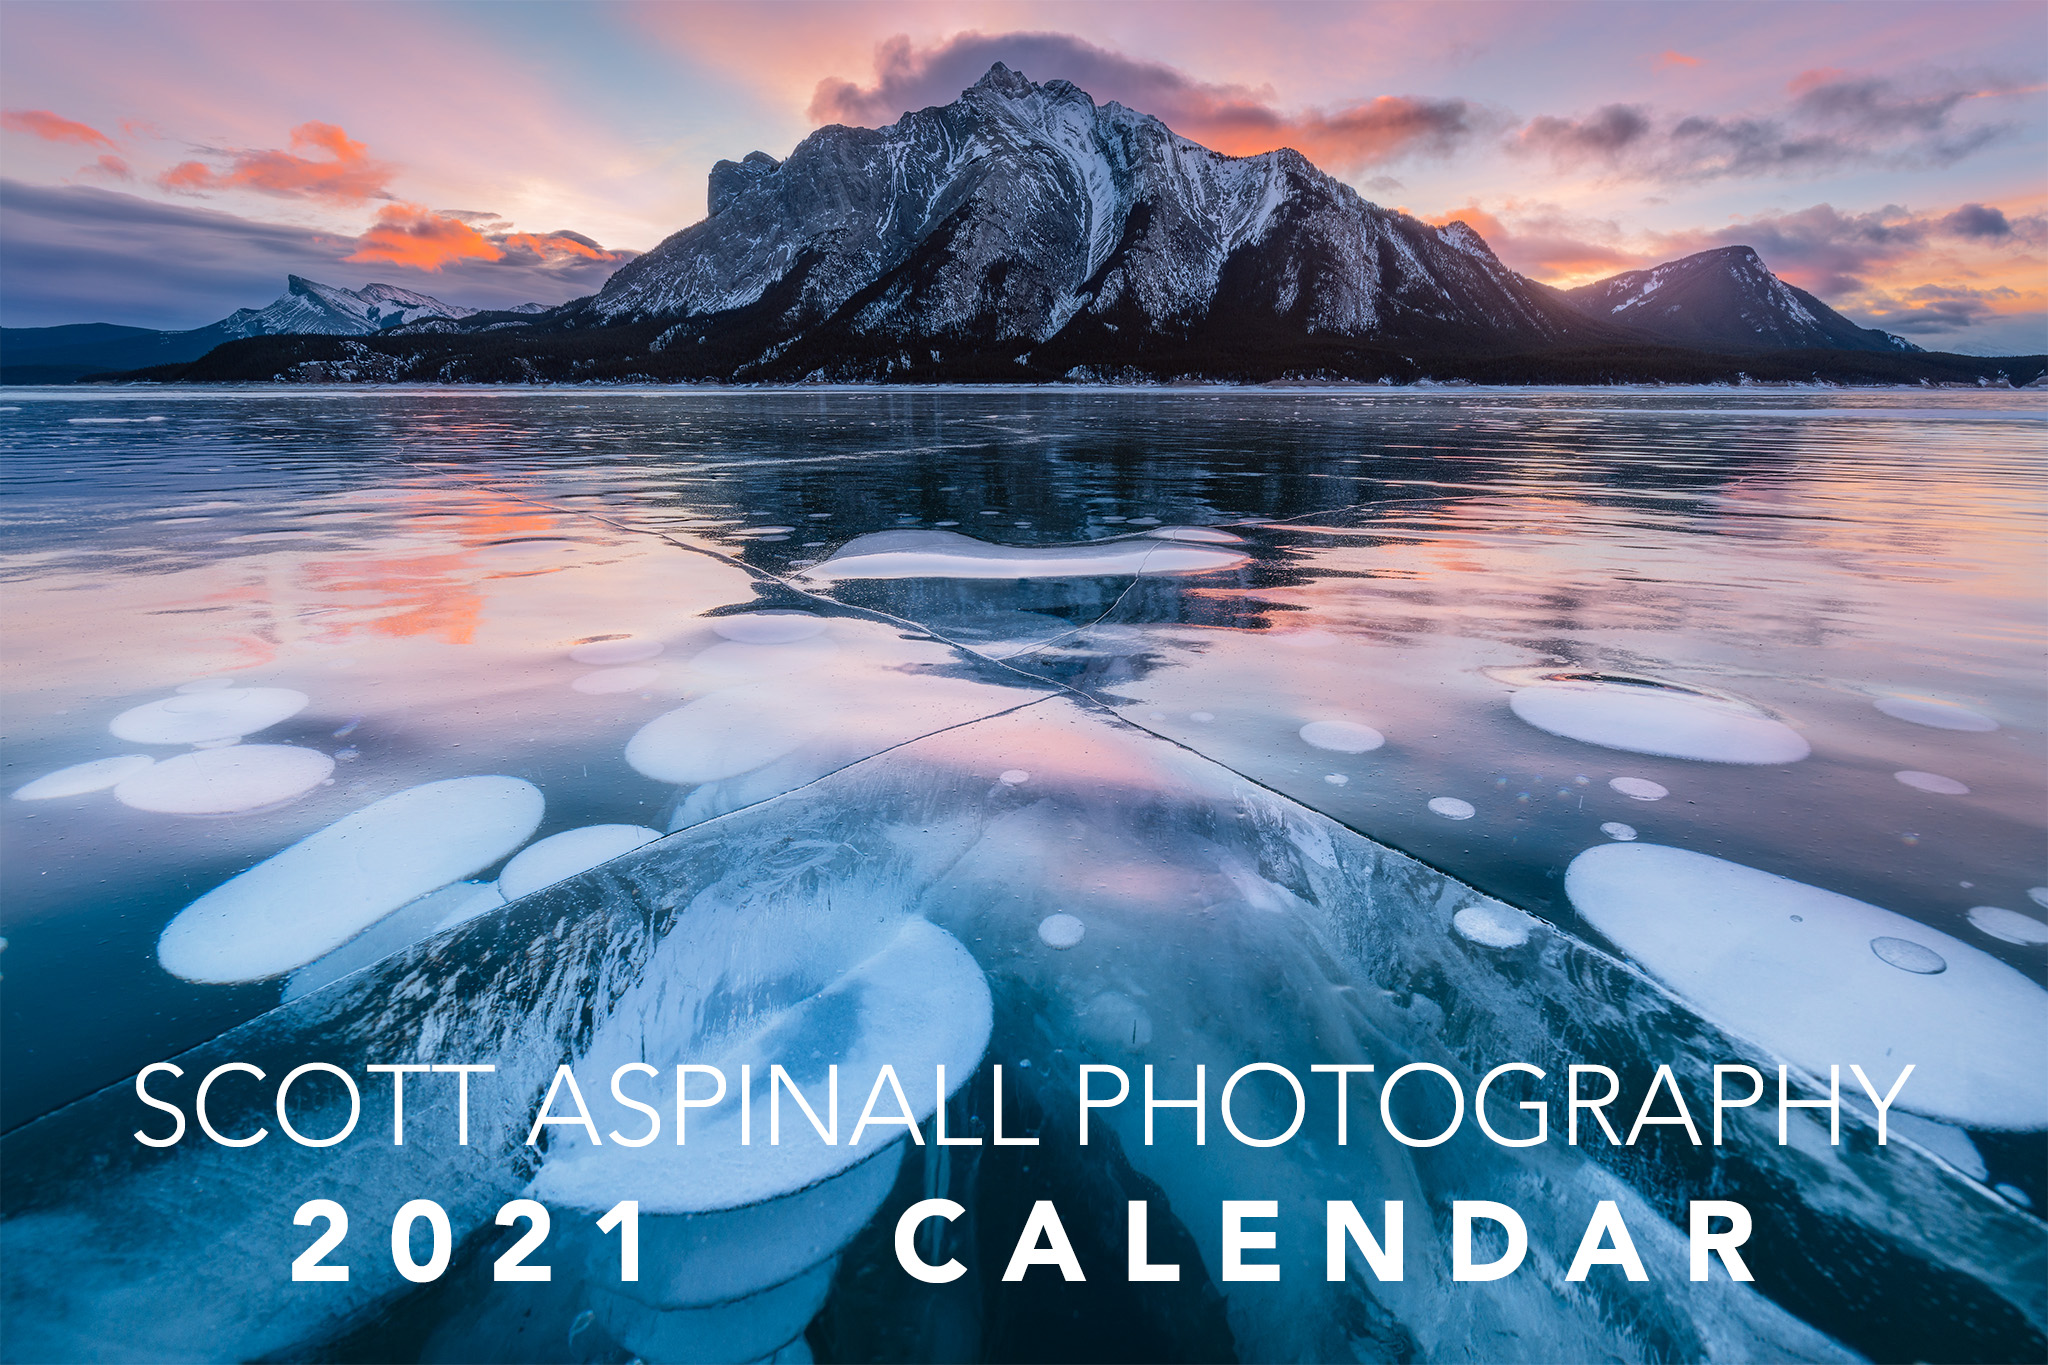 The cover photo for Scott Aspinall Photography's 2021 landscape photography calendar